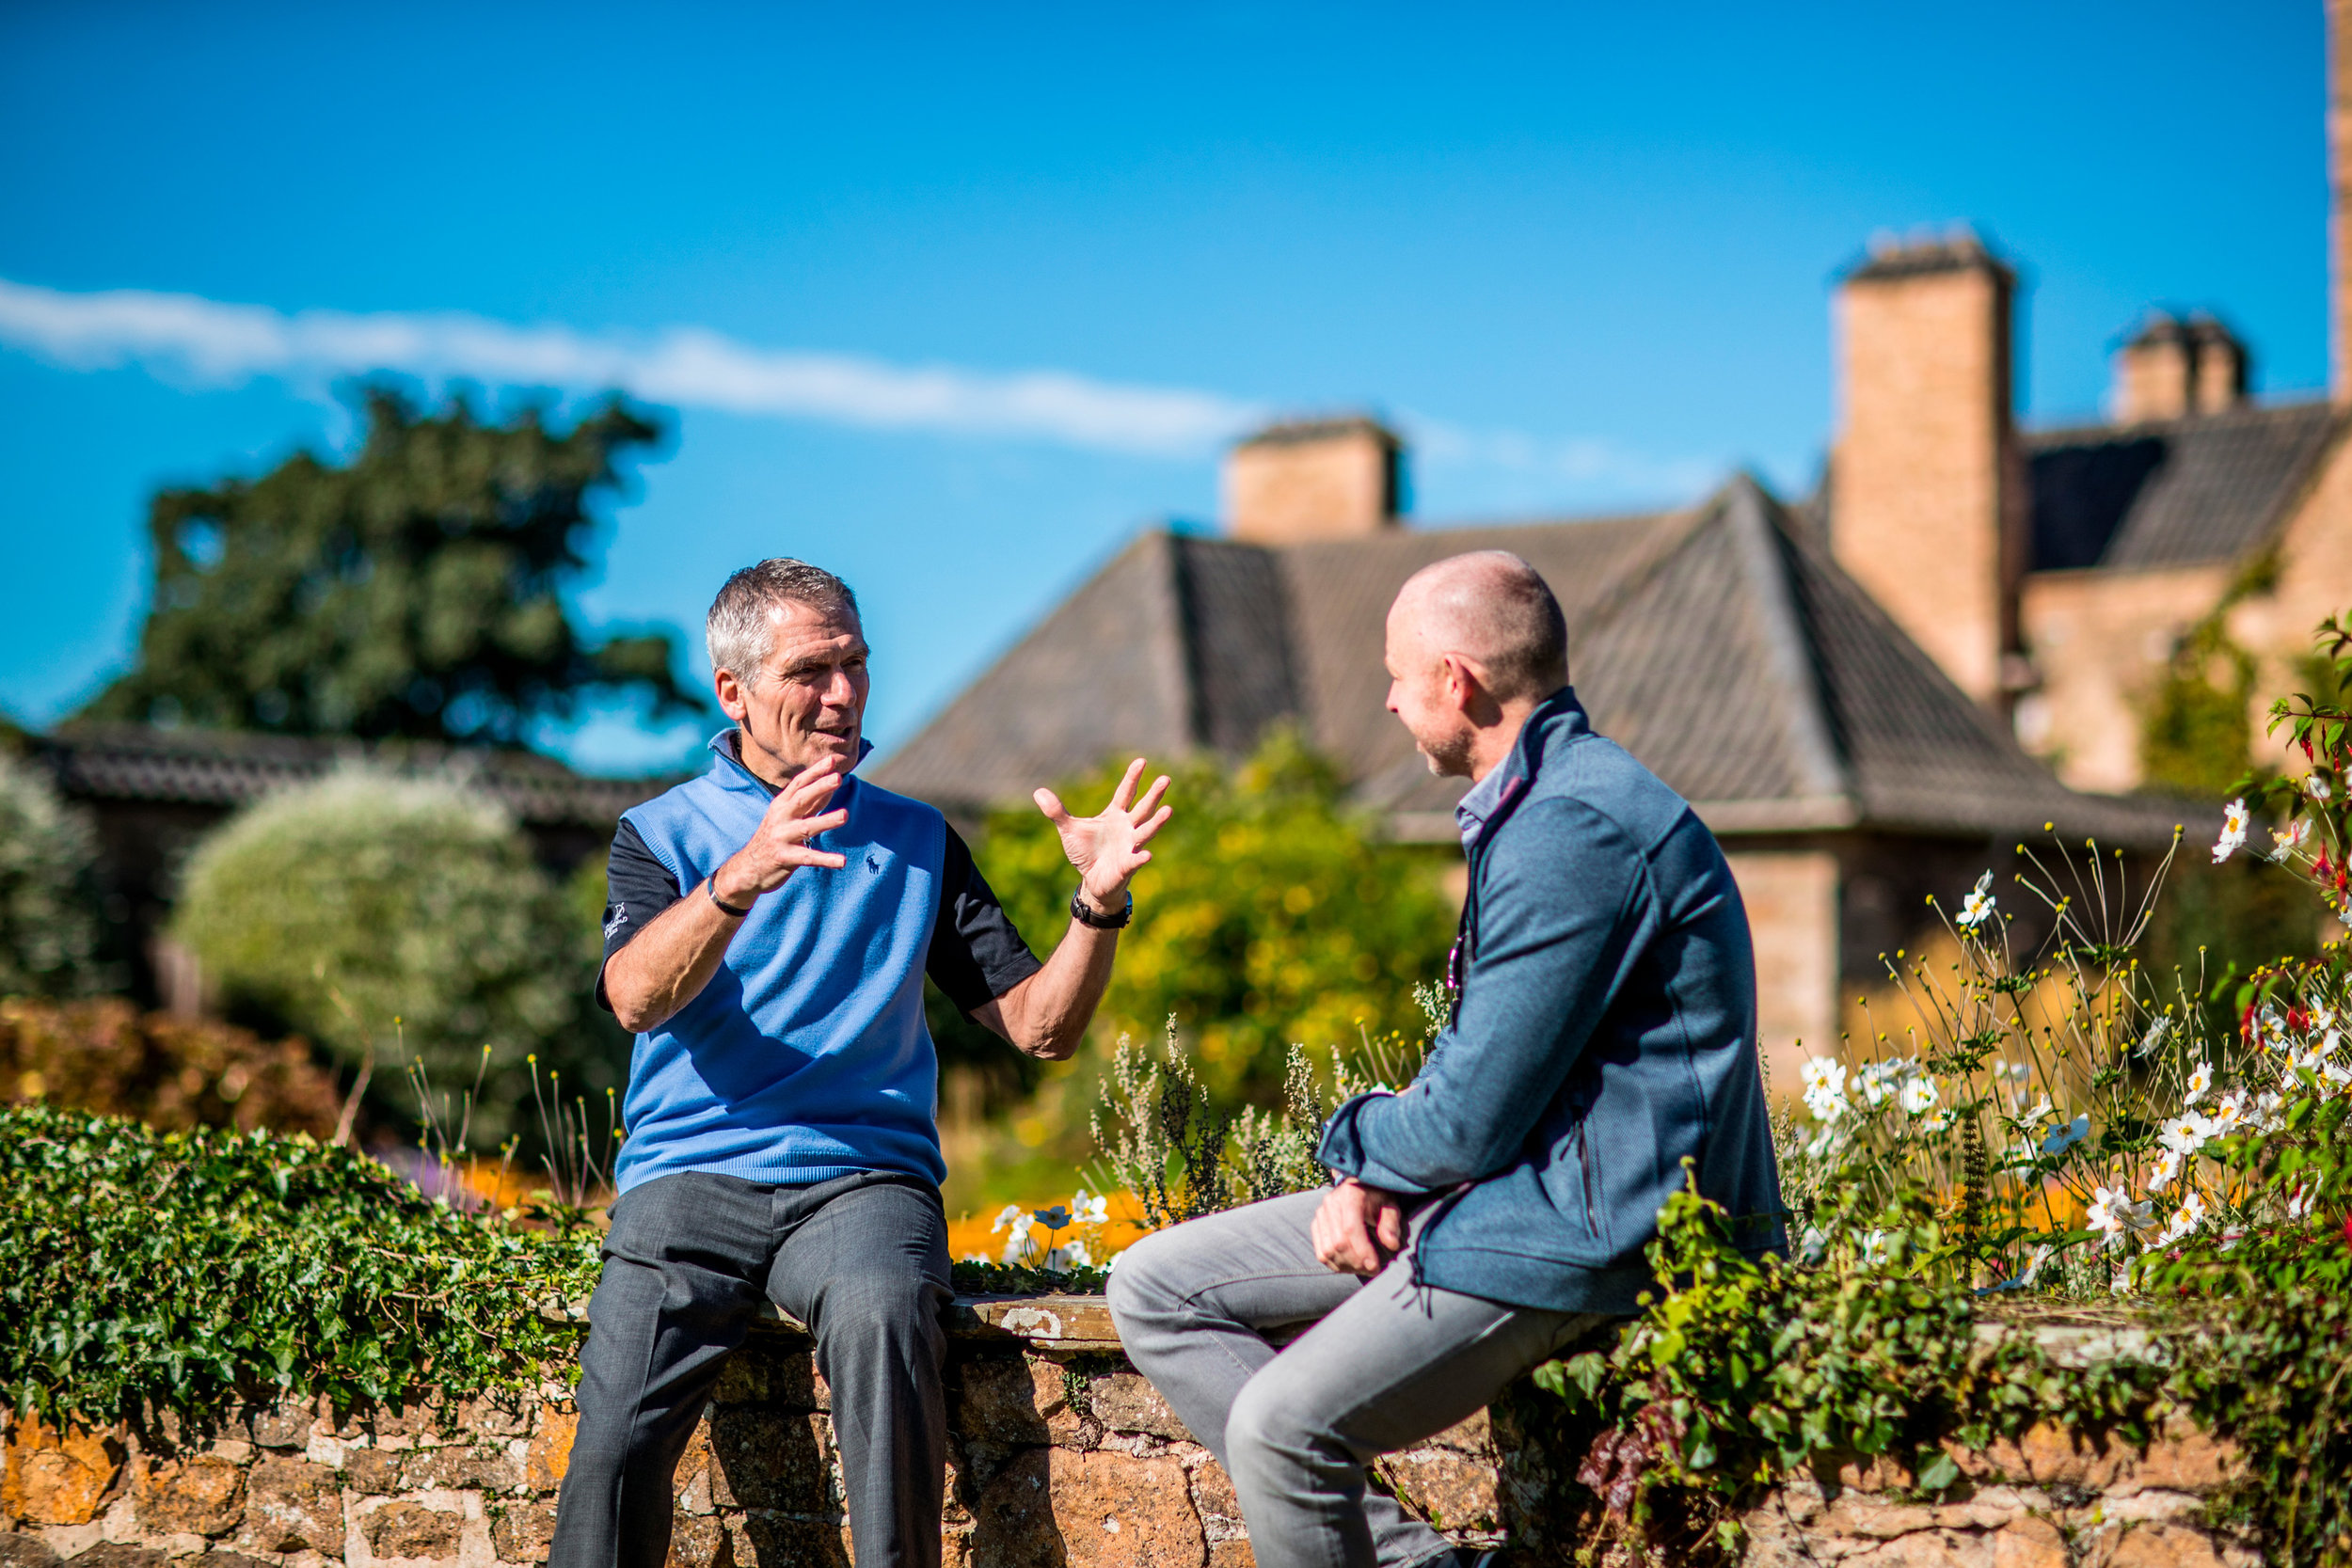 Charlie with a client in a beautiful outdoor setting